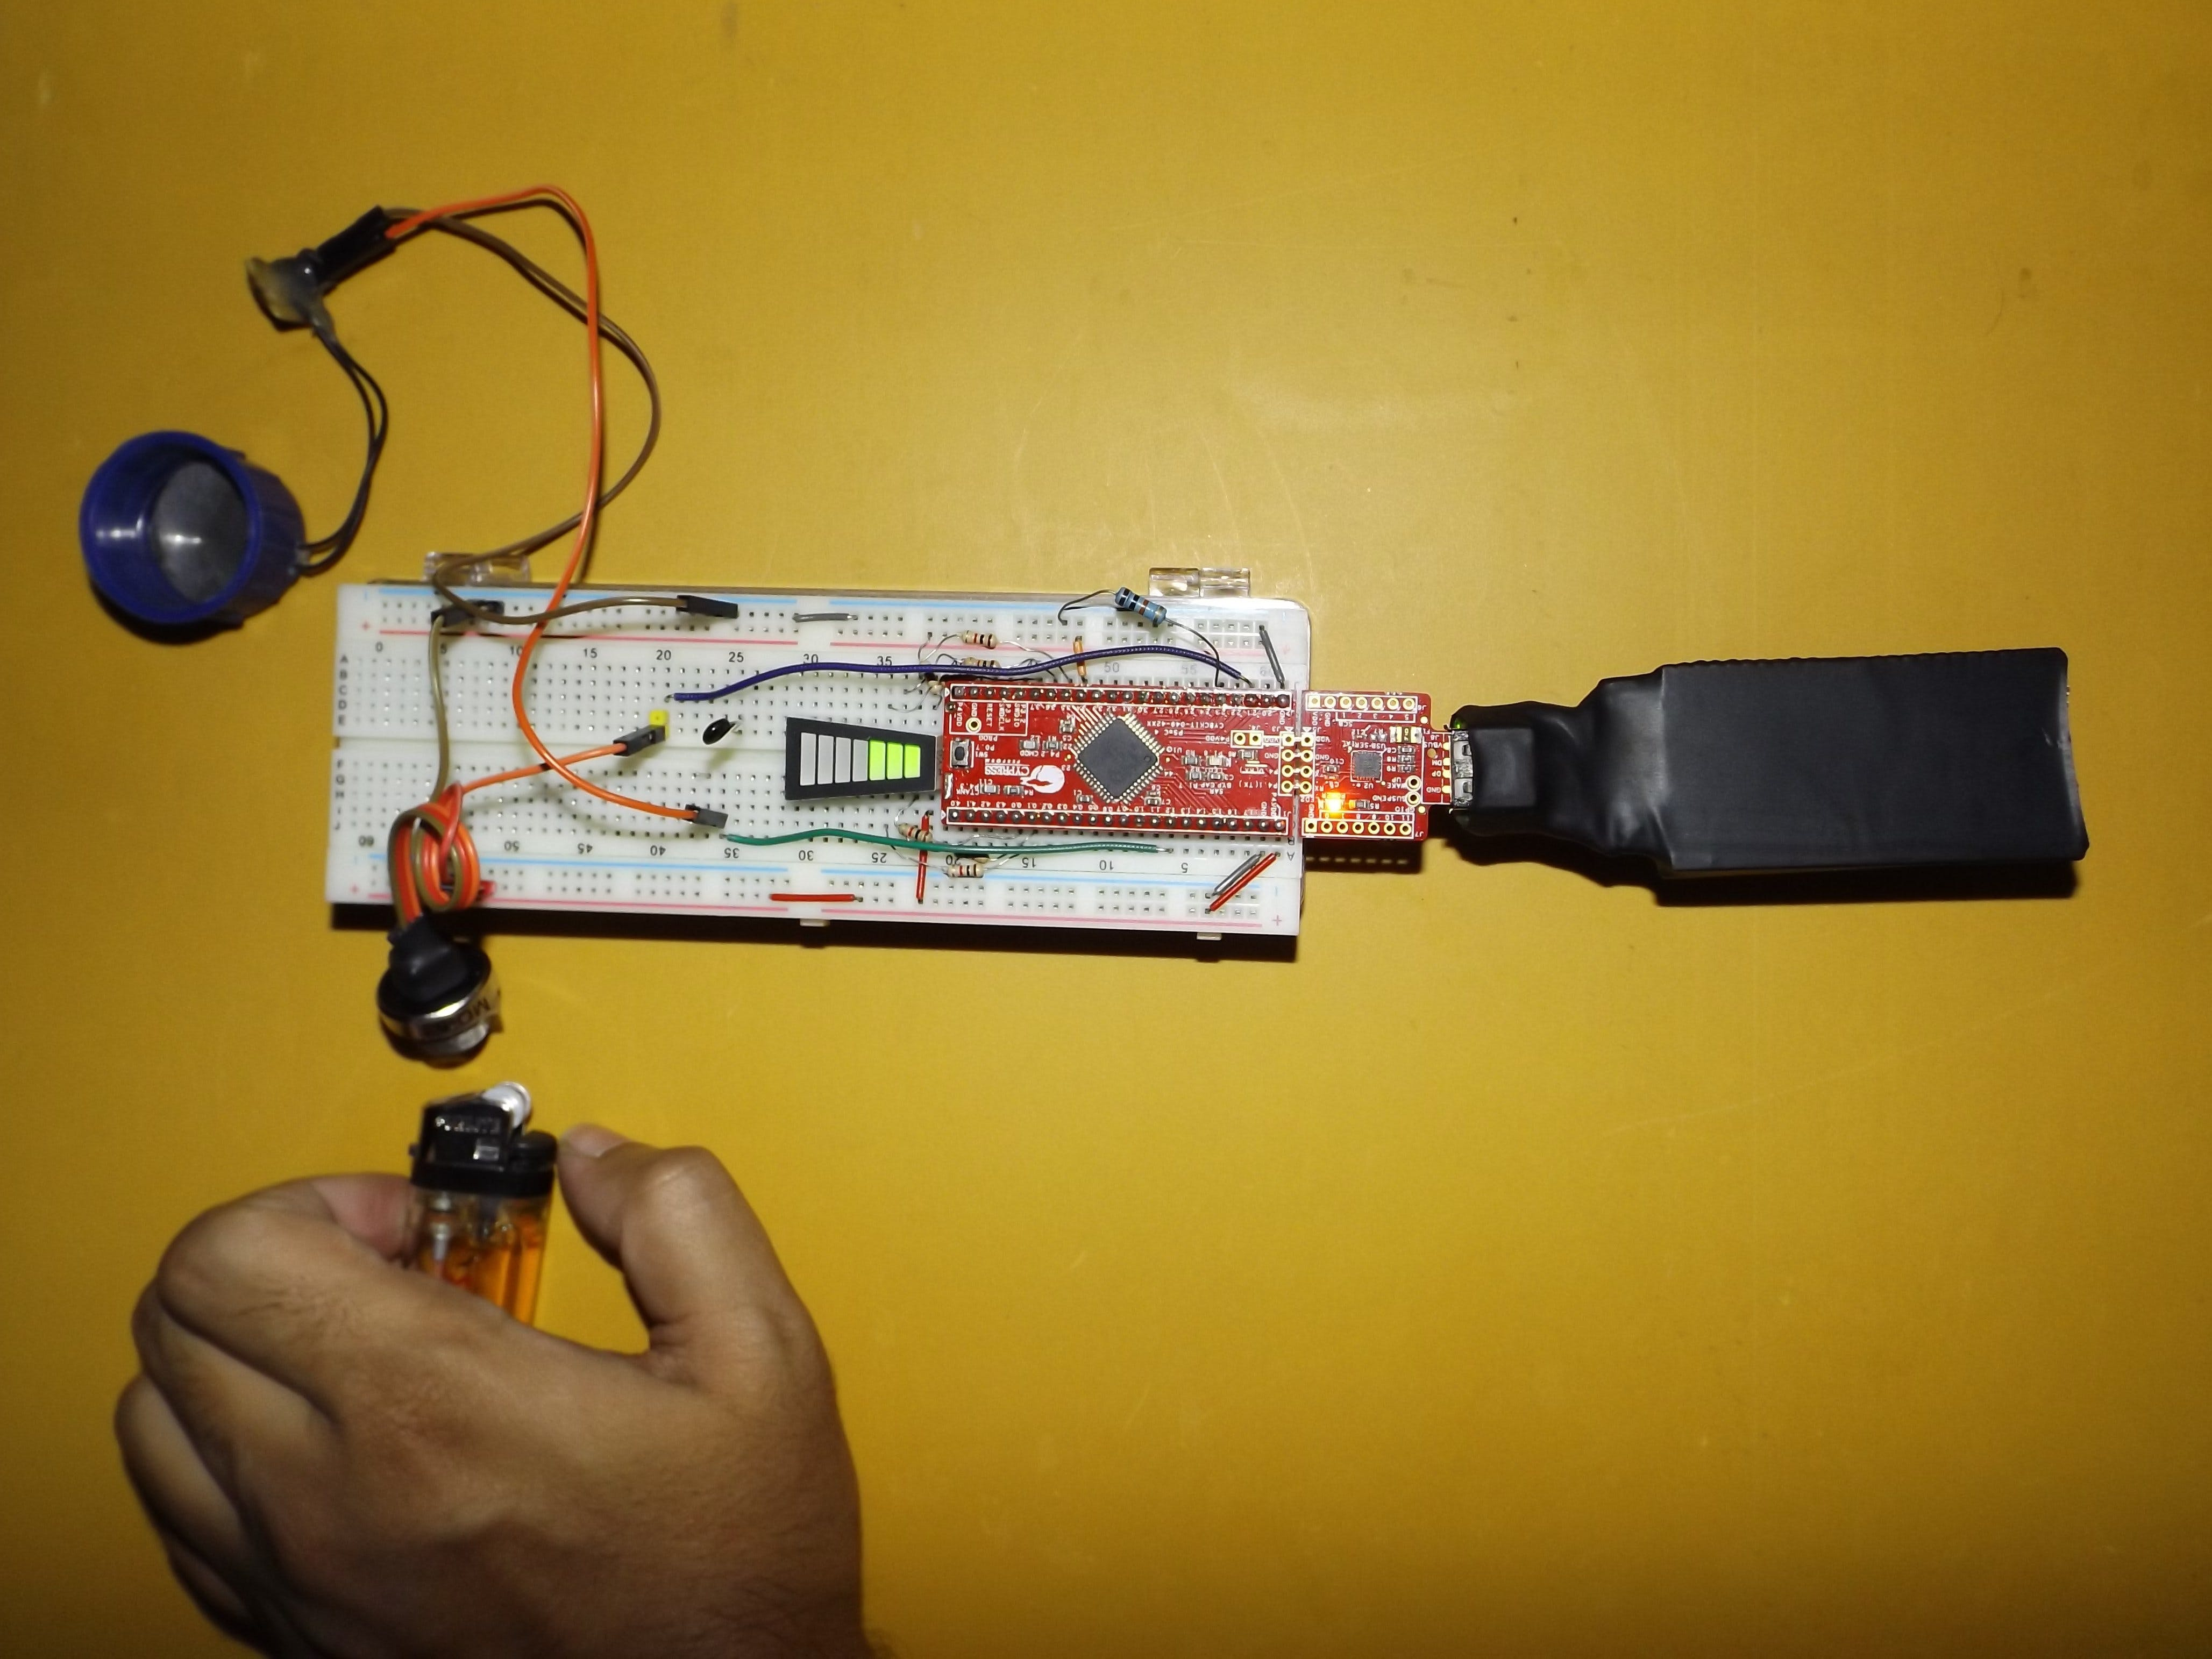 PSoC 4: Natural Gas Leakage Alarm System for Kitchen Safety